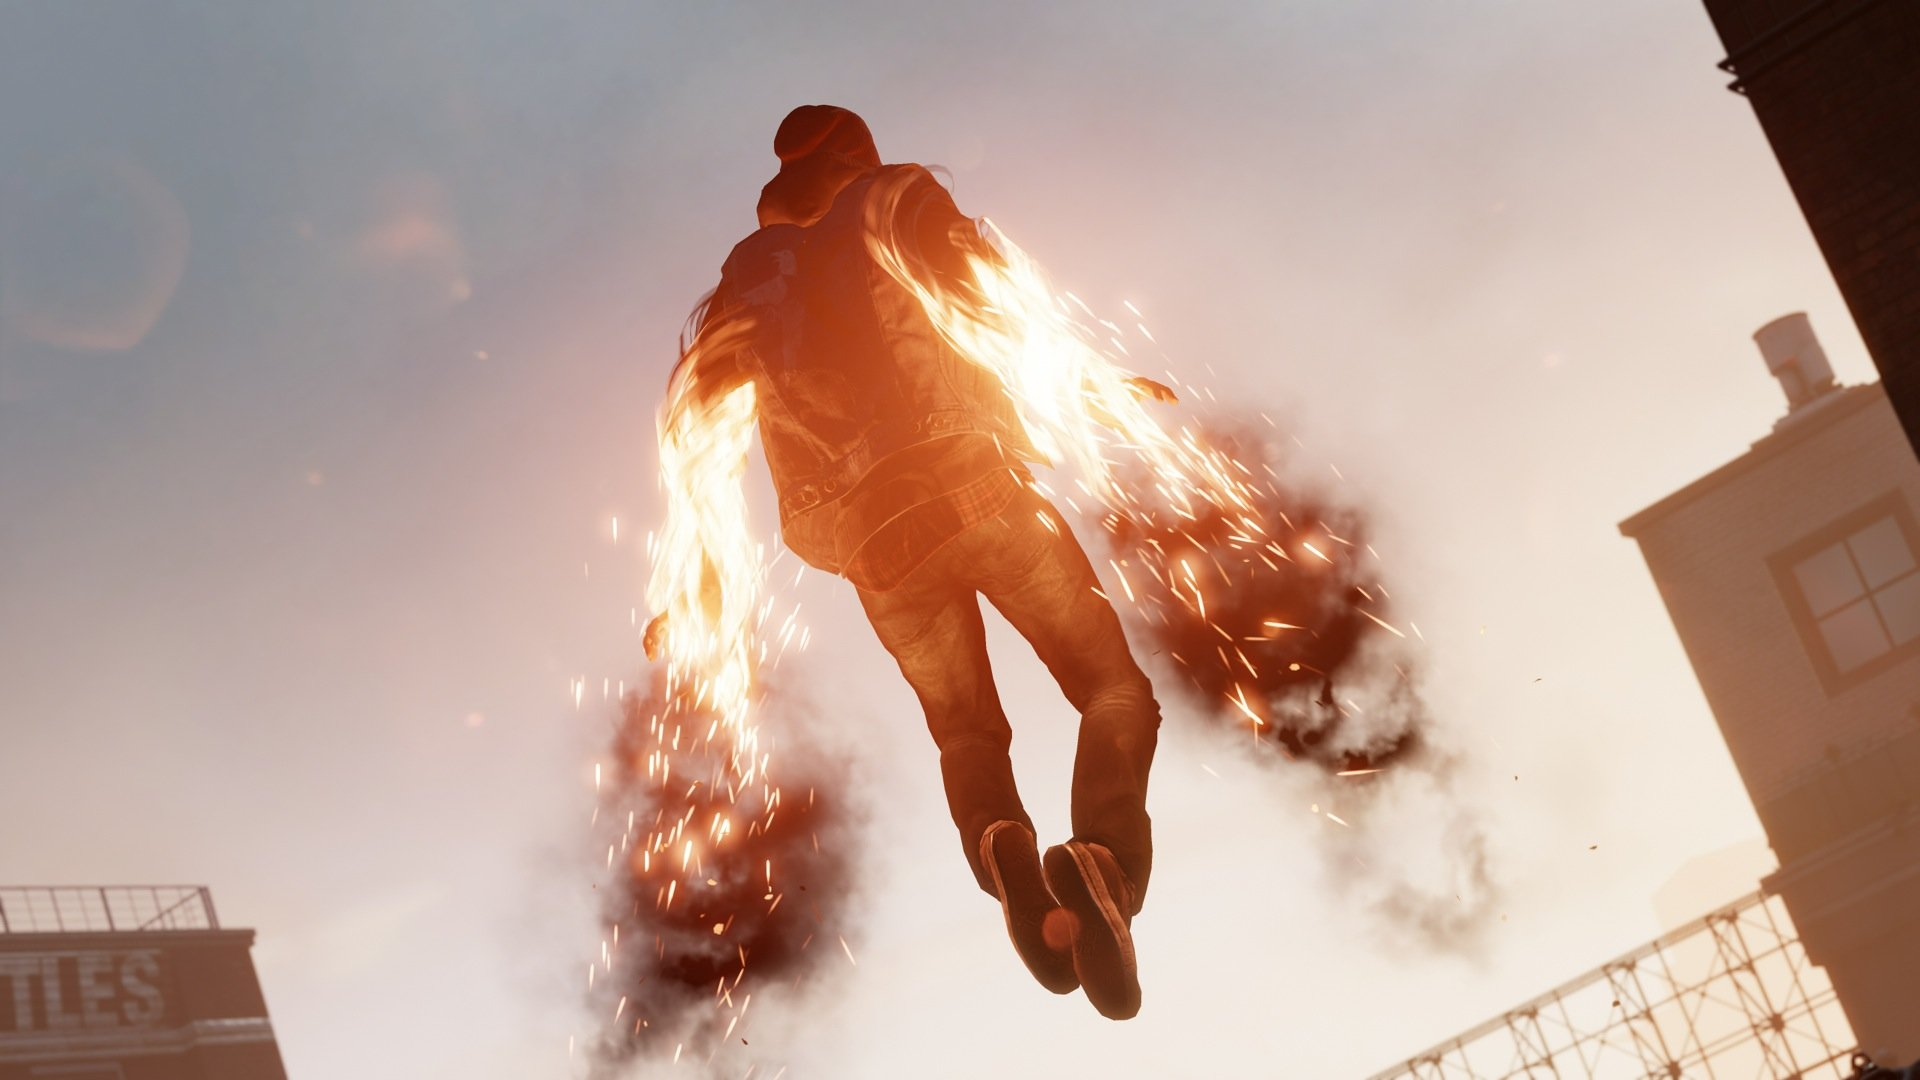 Infamous Second Son Wallpapers 1920x1080 Full Hd 1080p Desktop